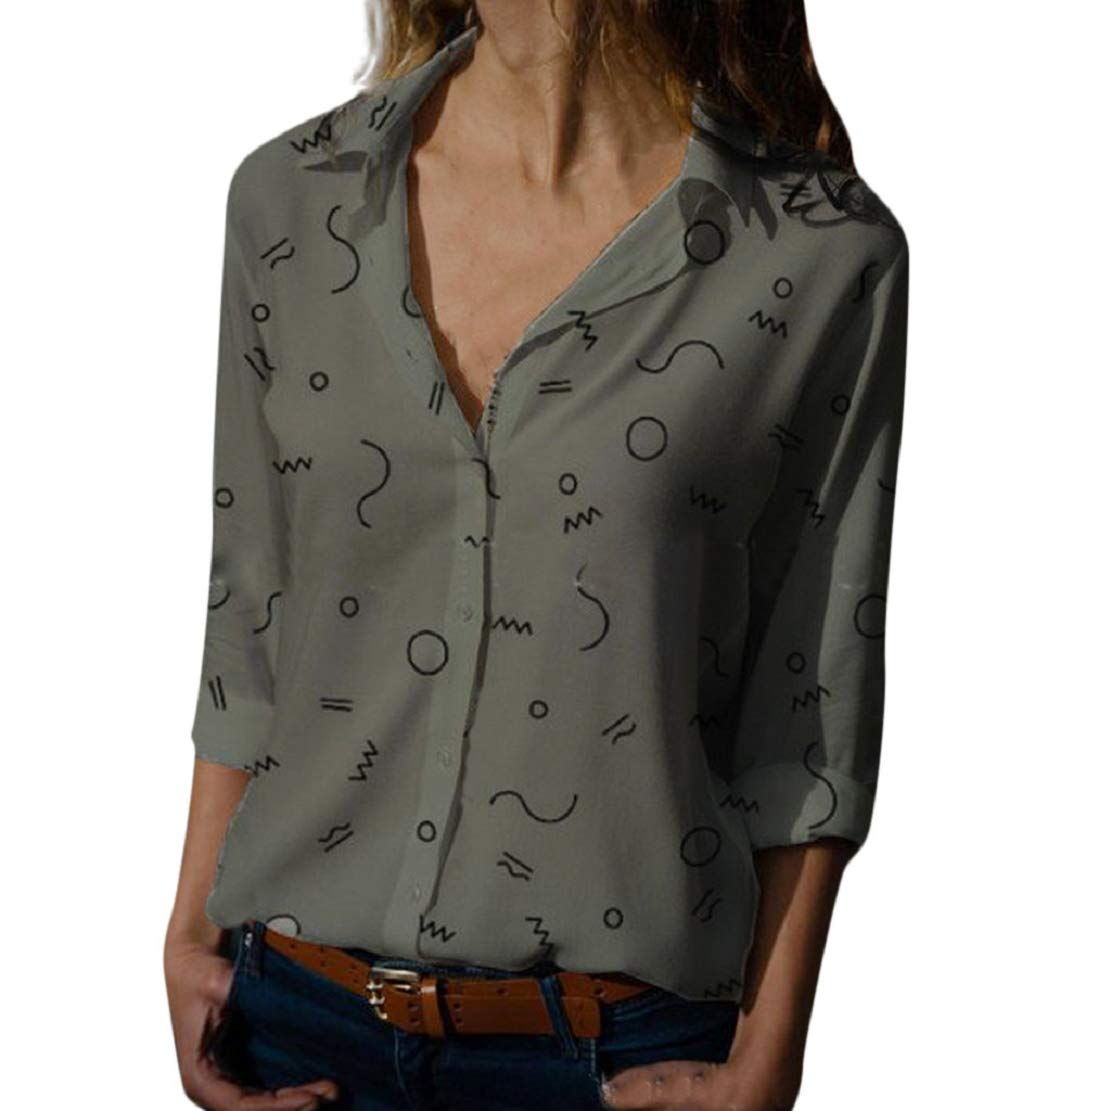 LowProfile Womens Geometric Patterned Casual Blouse Turndown Lapel Button Up Ladies Shirts Long Sleeve Stylish Tunic